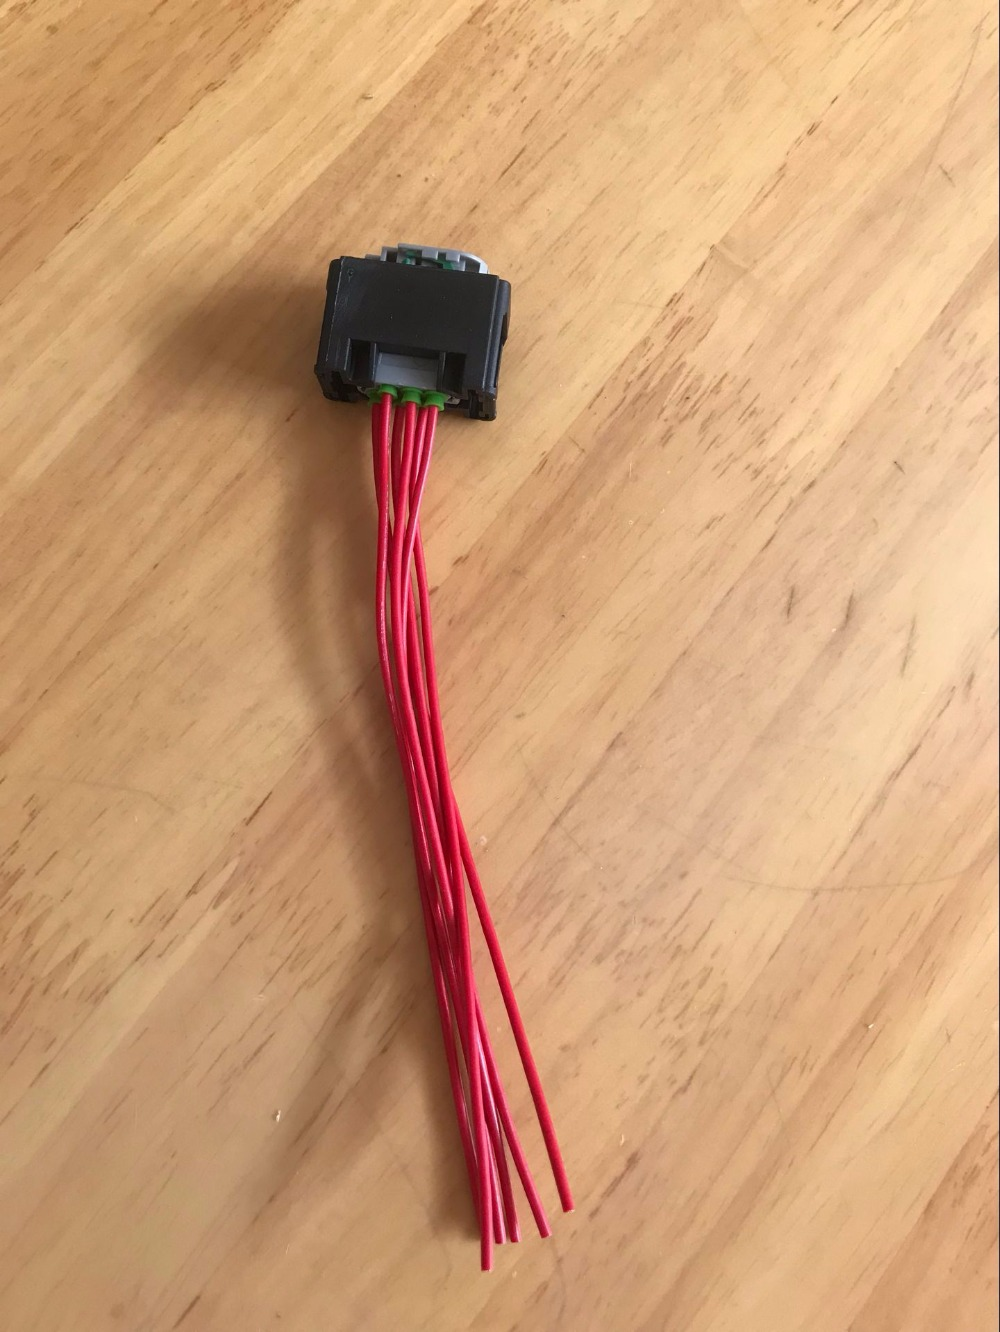 6 Pin Tyco Plug Valve Sensor Connector Wire Harness 1 967616 Wiring 7m0973119 In Cables Adapters Sockets From Automobiles Motorcycles On